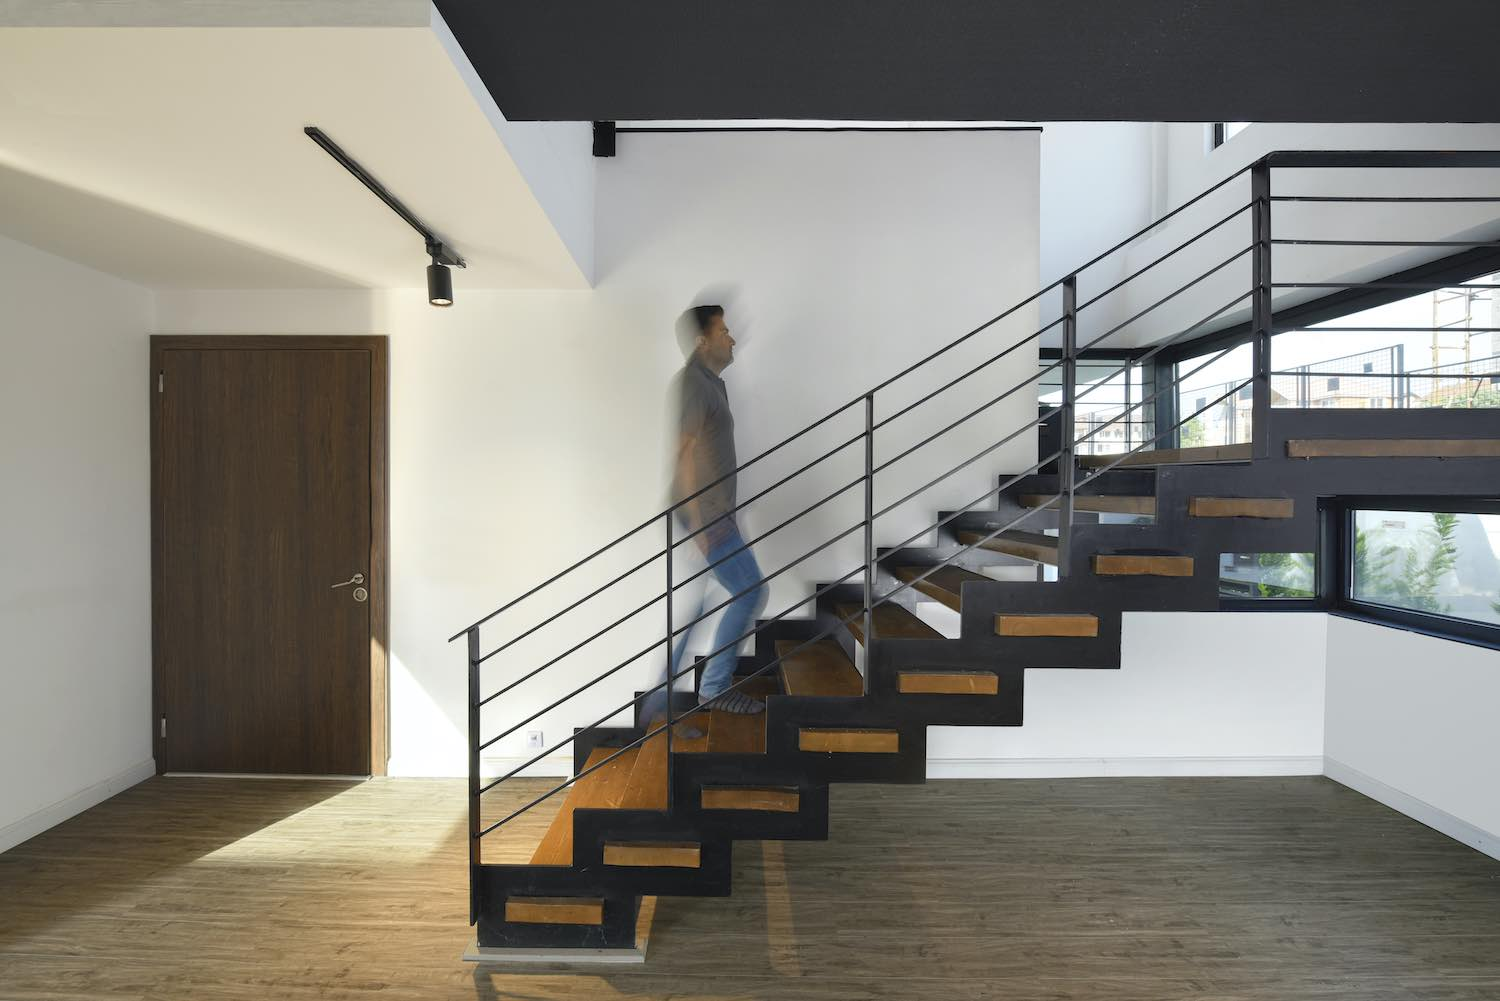 staircase made of wood and steel